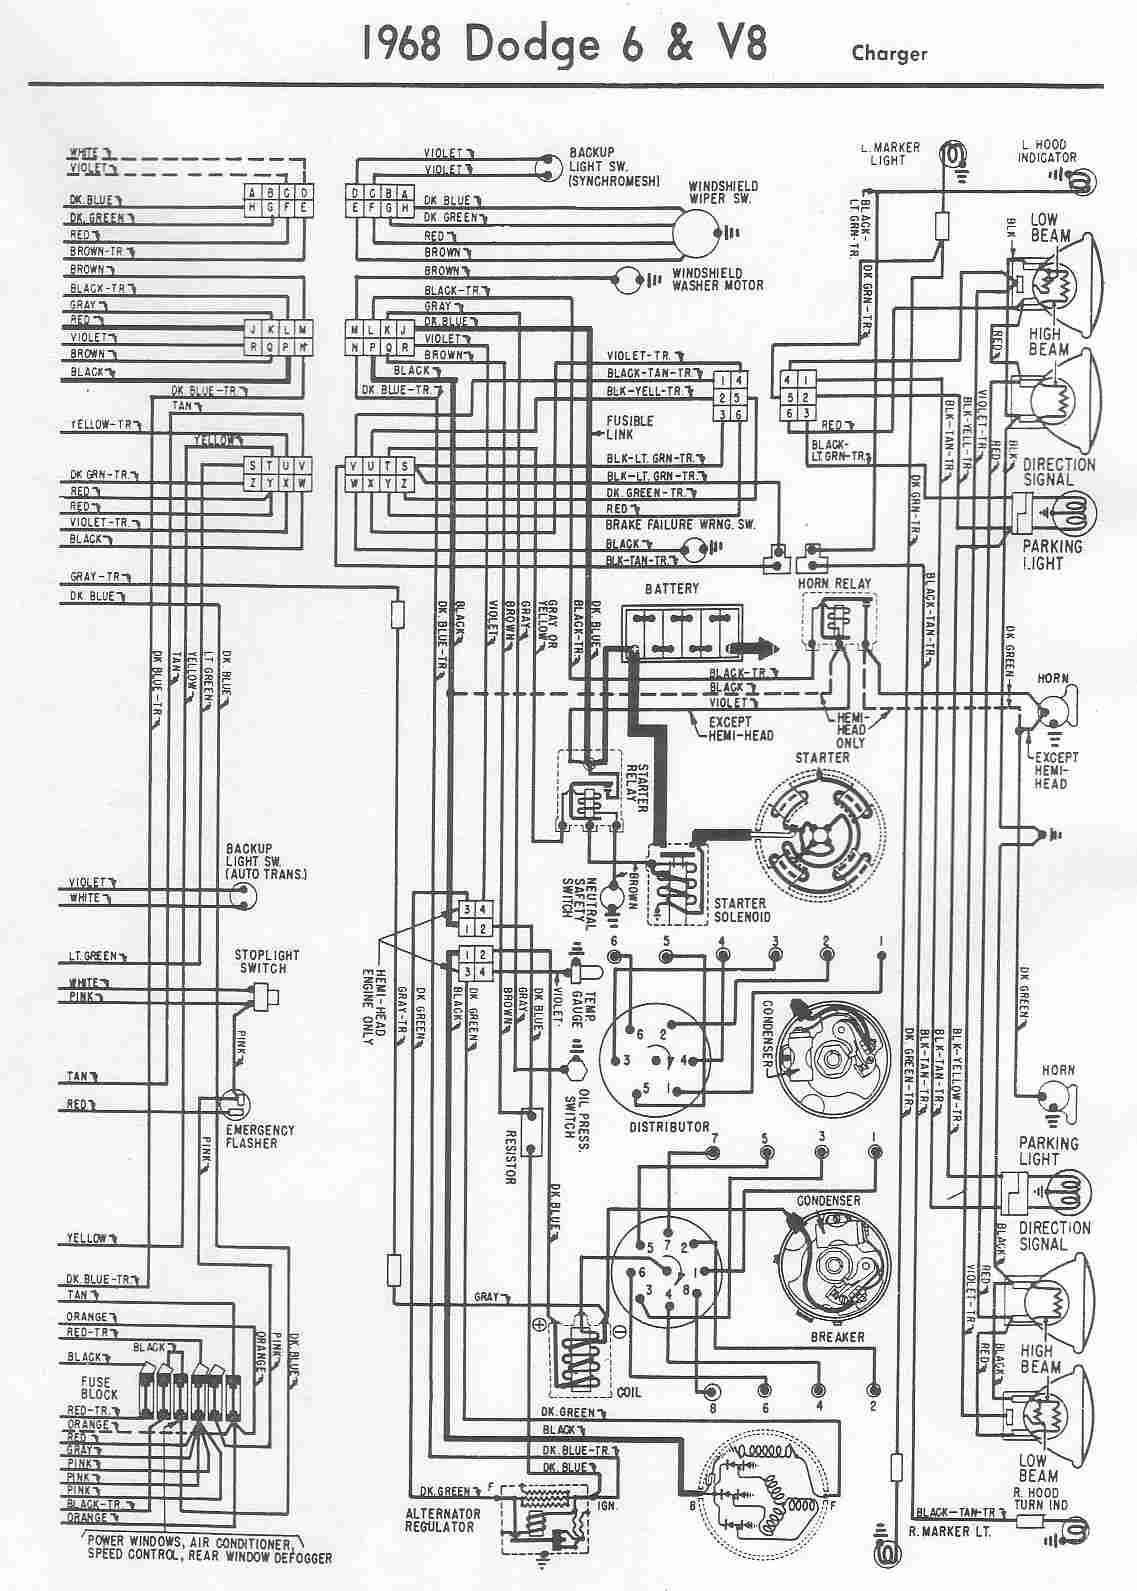 1975 Plymouth Valiant Wiring Diagram Free Download 1972 Mg Midget Ignition Dodge Car Manuals Diagrams Pdf Fault Codes Rh Automotive Net